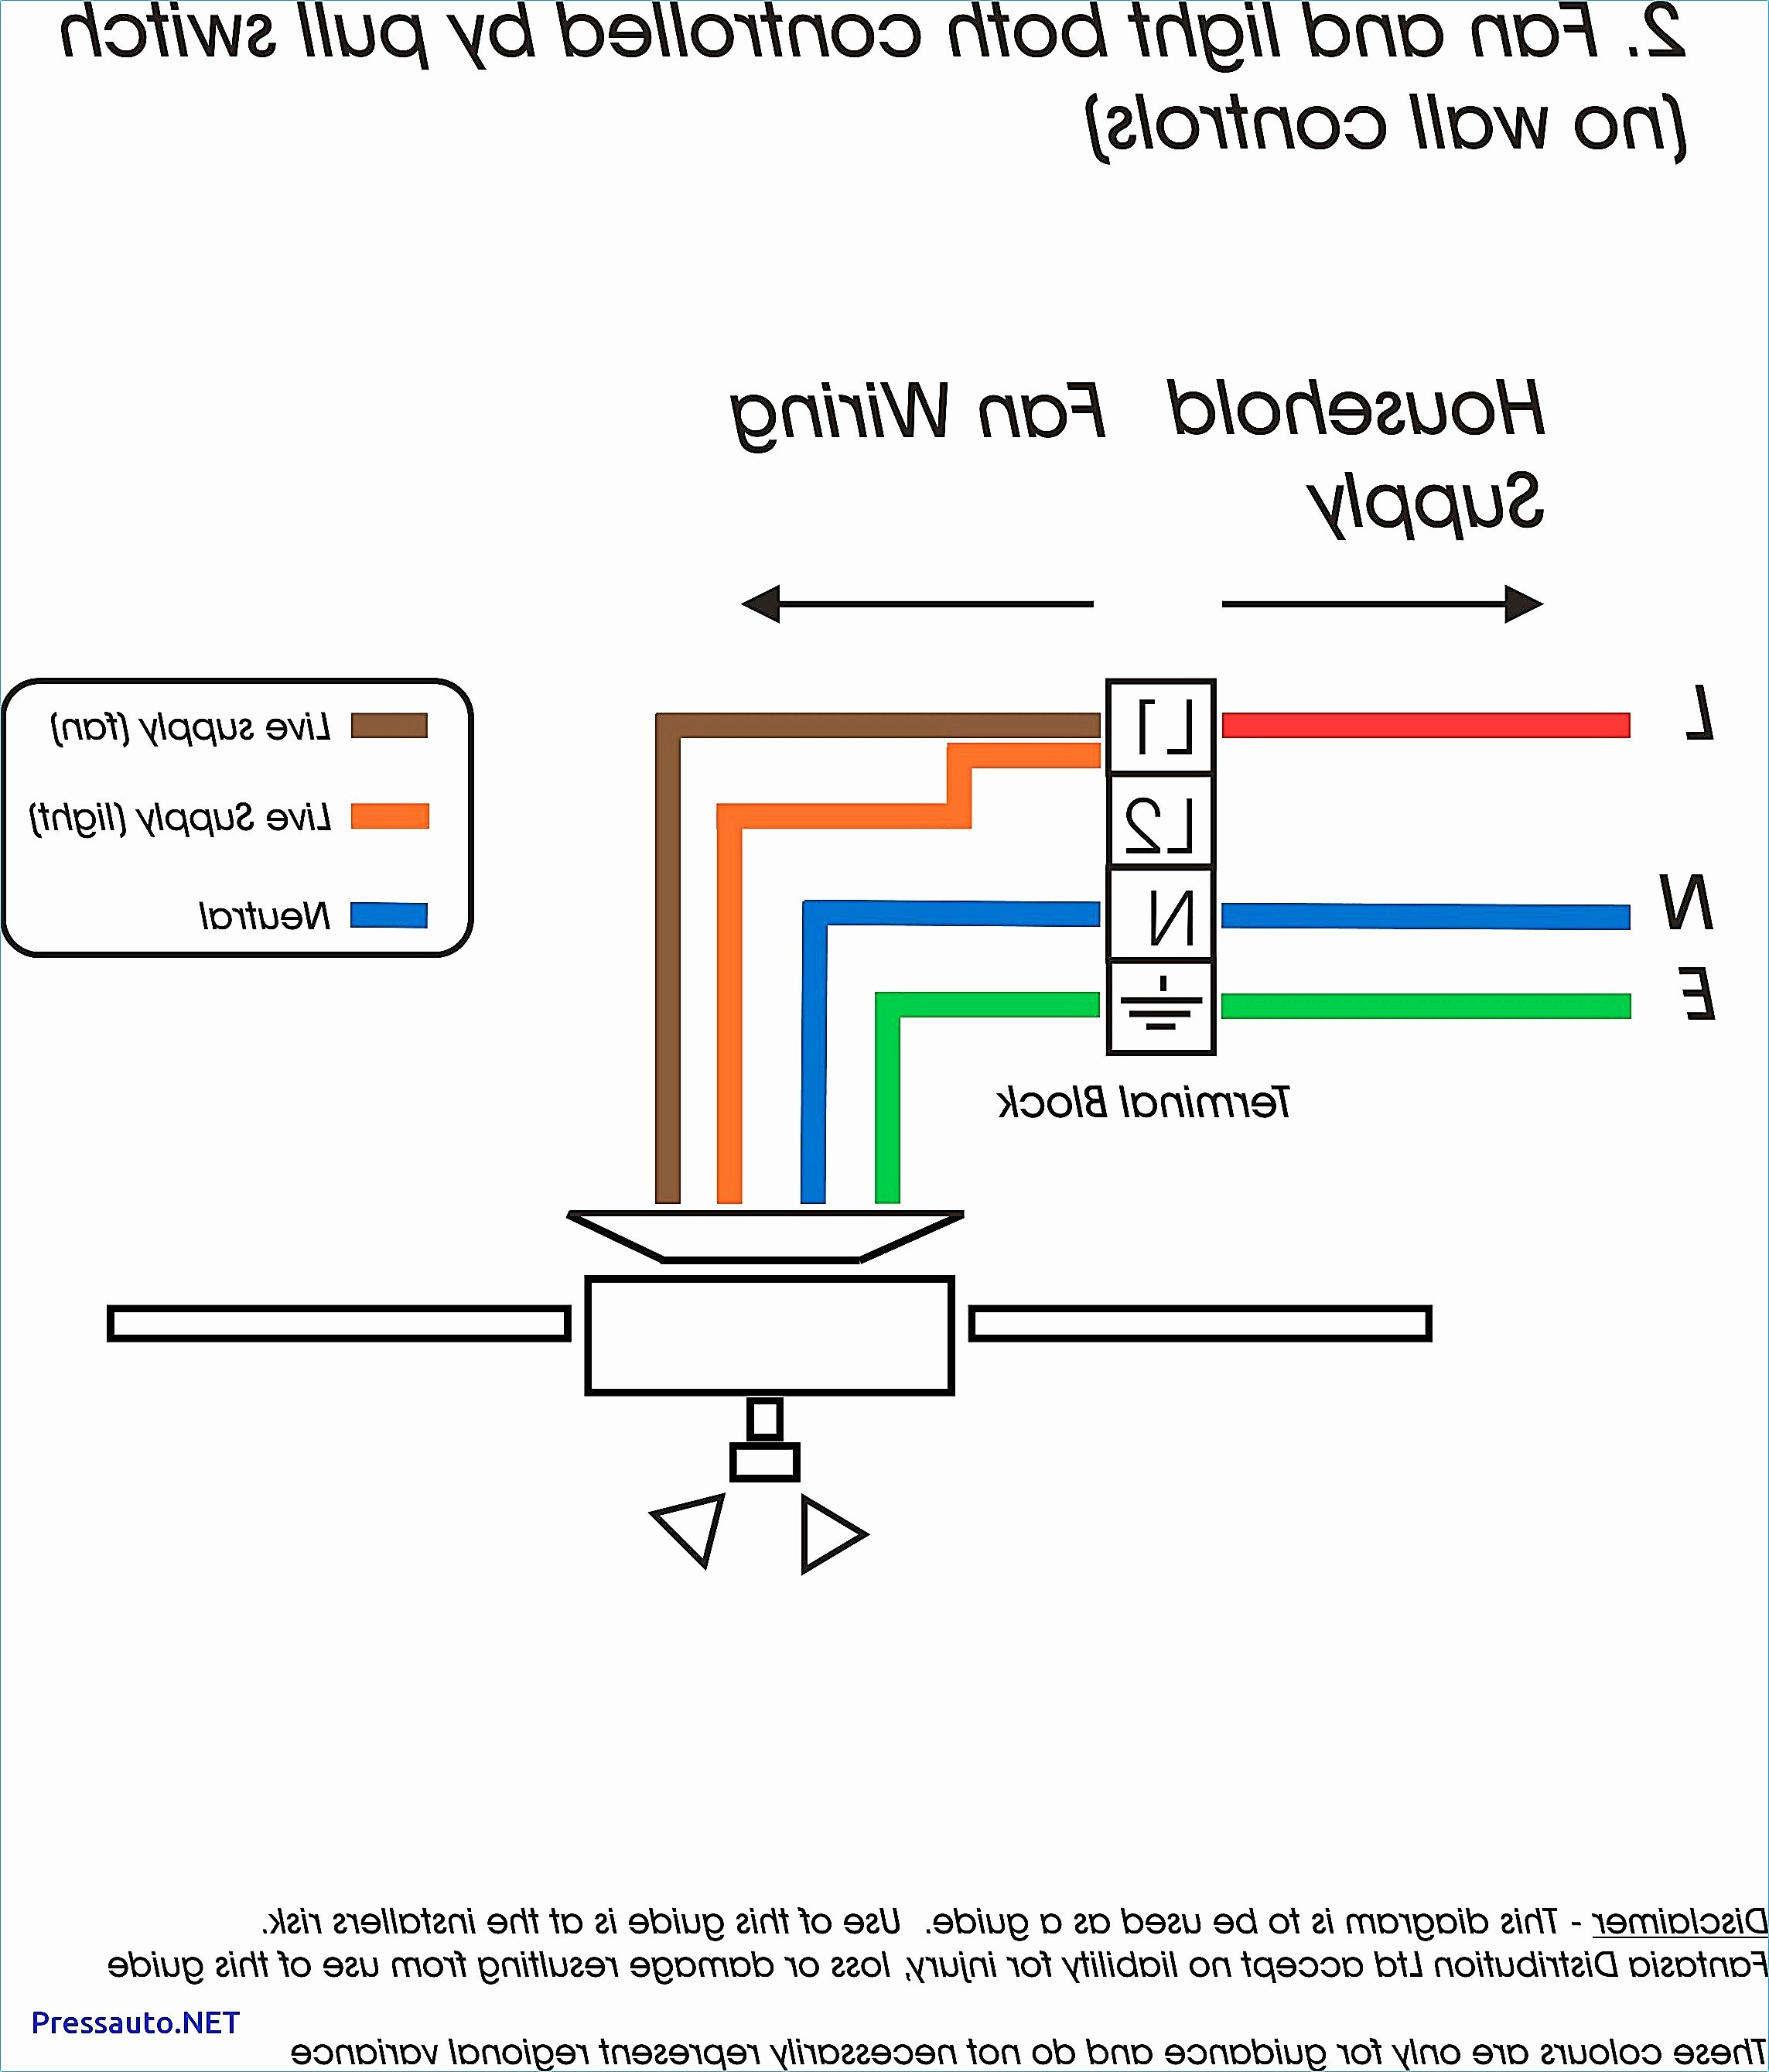 cat5e crossover cable wiring diagram Collection-Wiring Diagram For Cat5 Crossover Cable Best Wiring Diagram For A Ethernet Switch Inspirationa Ethernet Switch 7-e